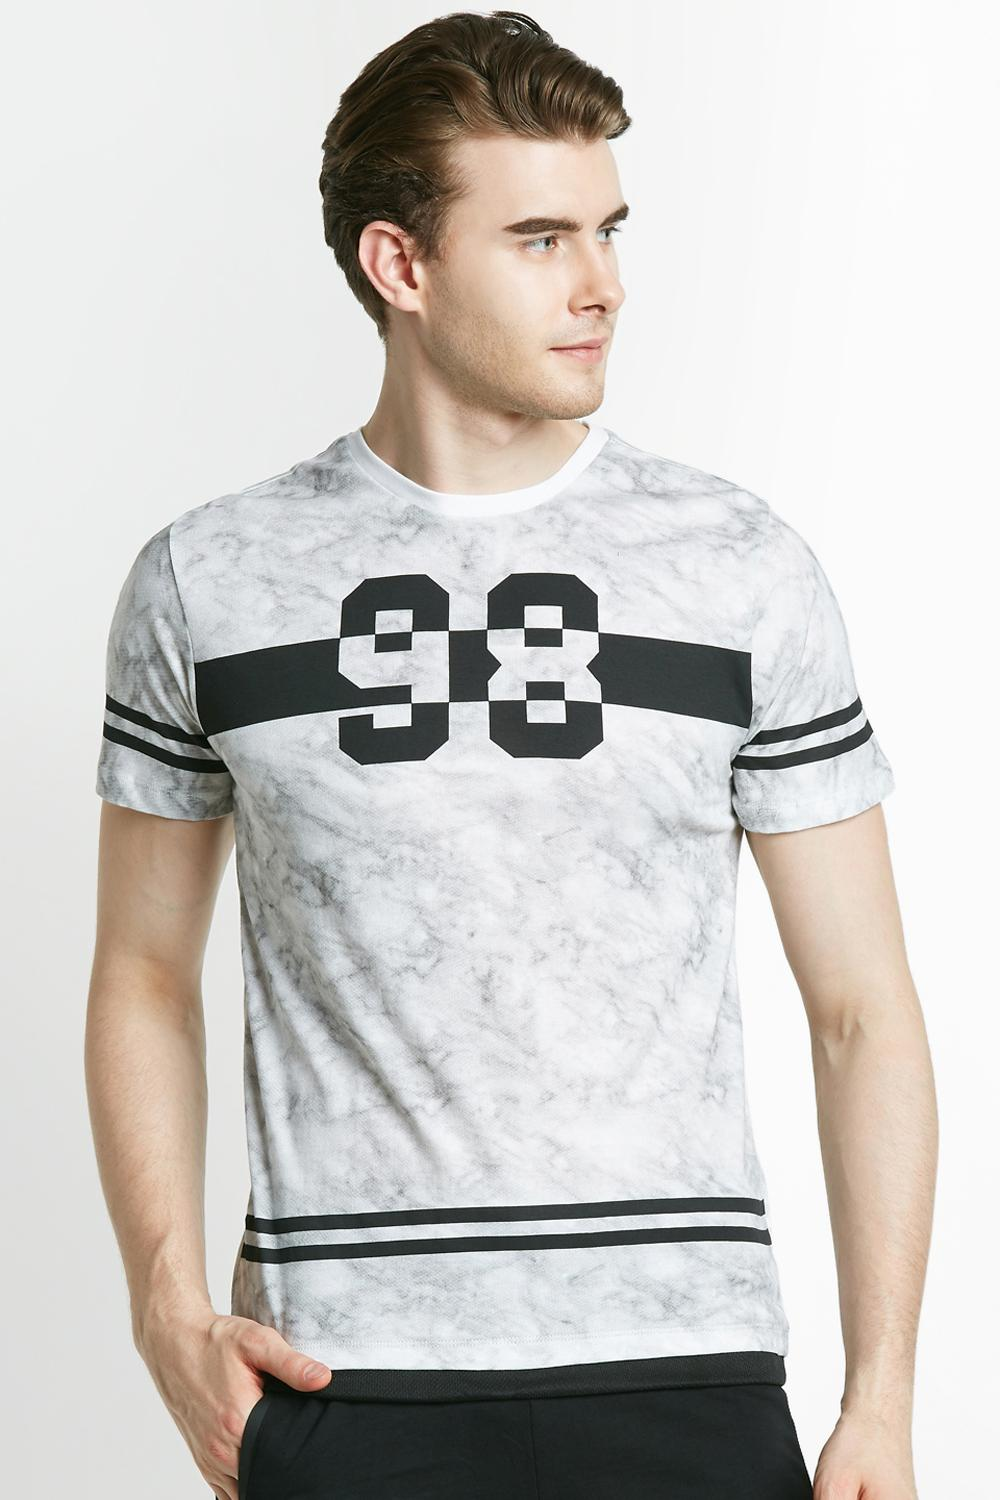 ca3af3ae4 Buy T Shirts for Men Online with Best Price in India